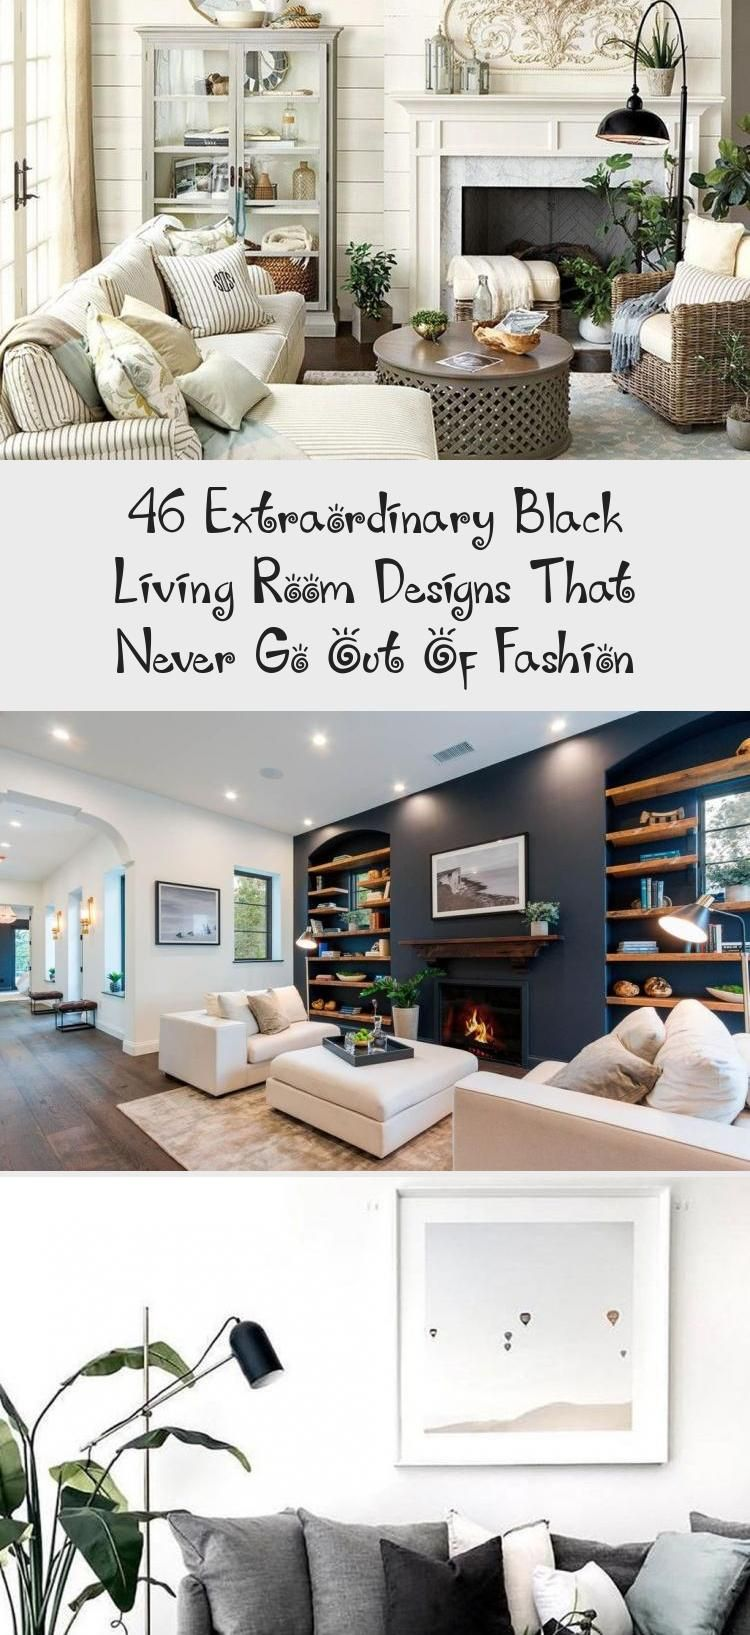 46 Extraordinary Black Living Room Designs That Never Go Out Of Fashion living